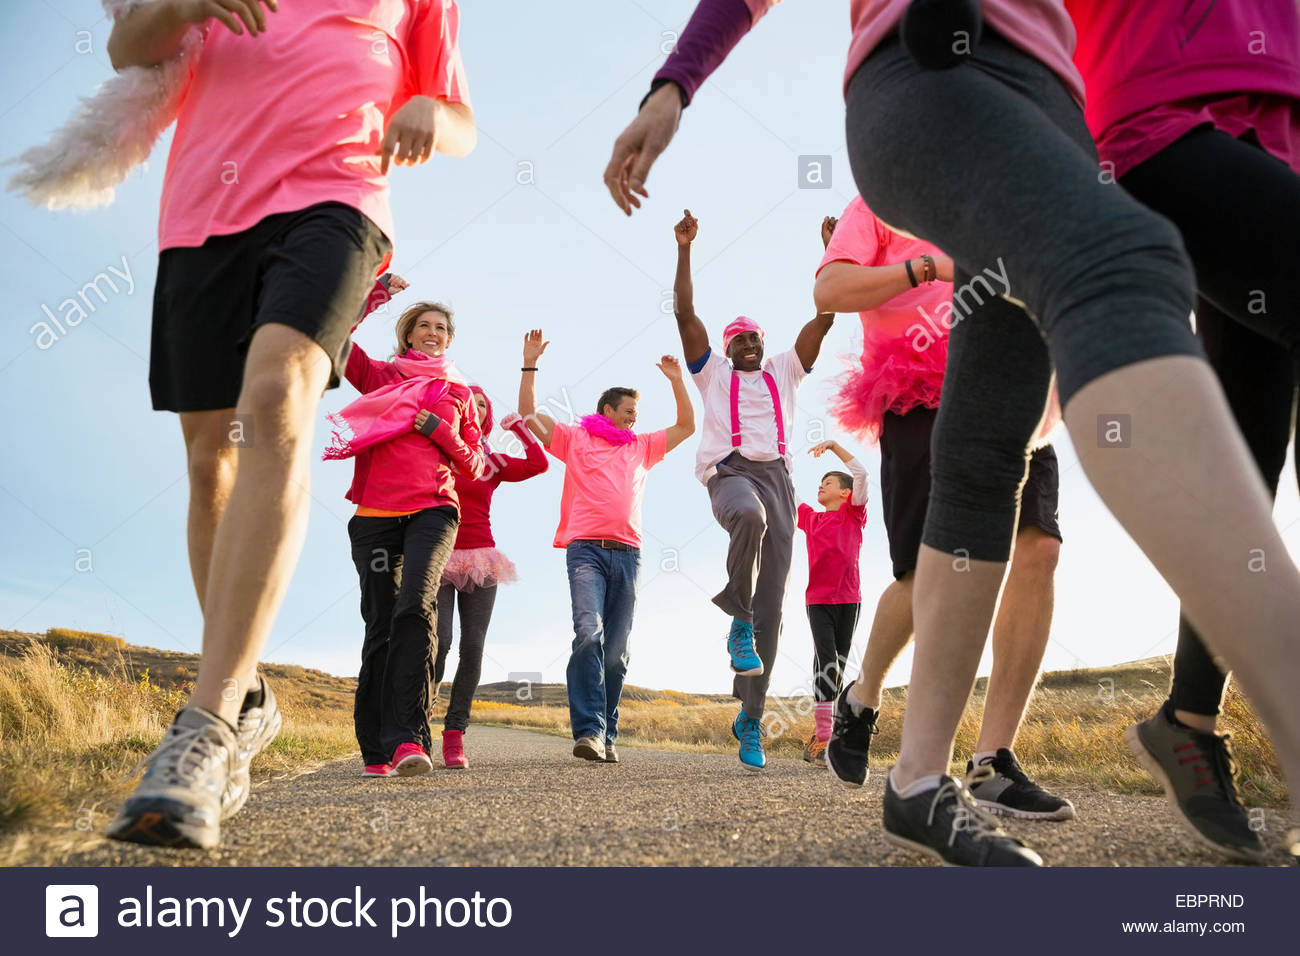 Group in pink walking at charity race - Stock Image